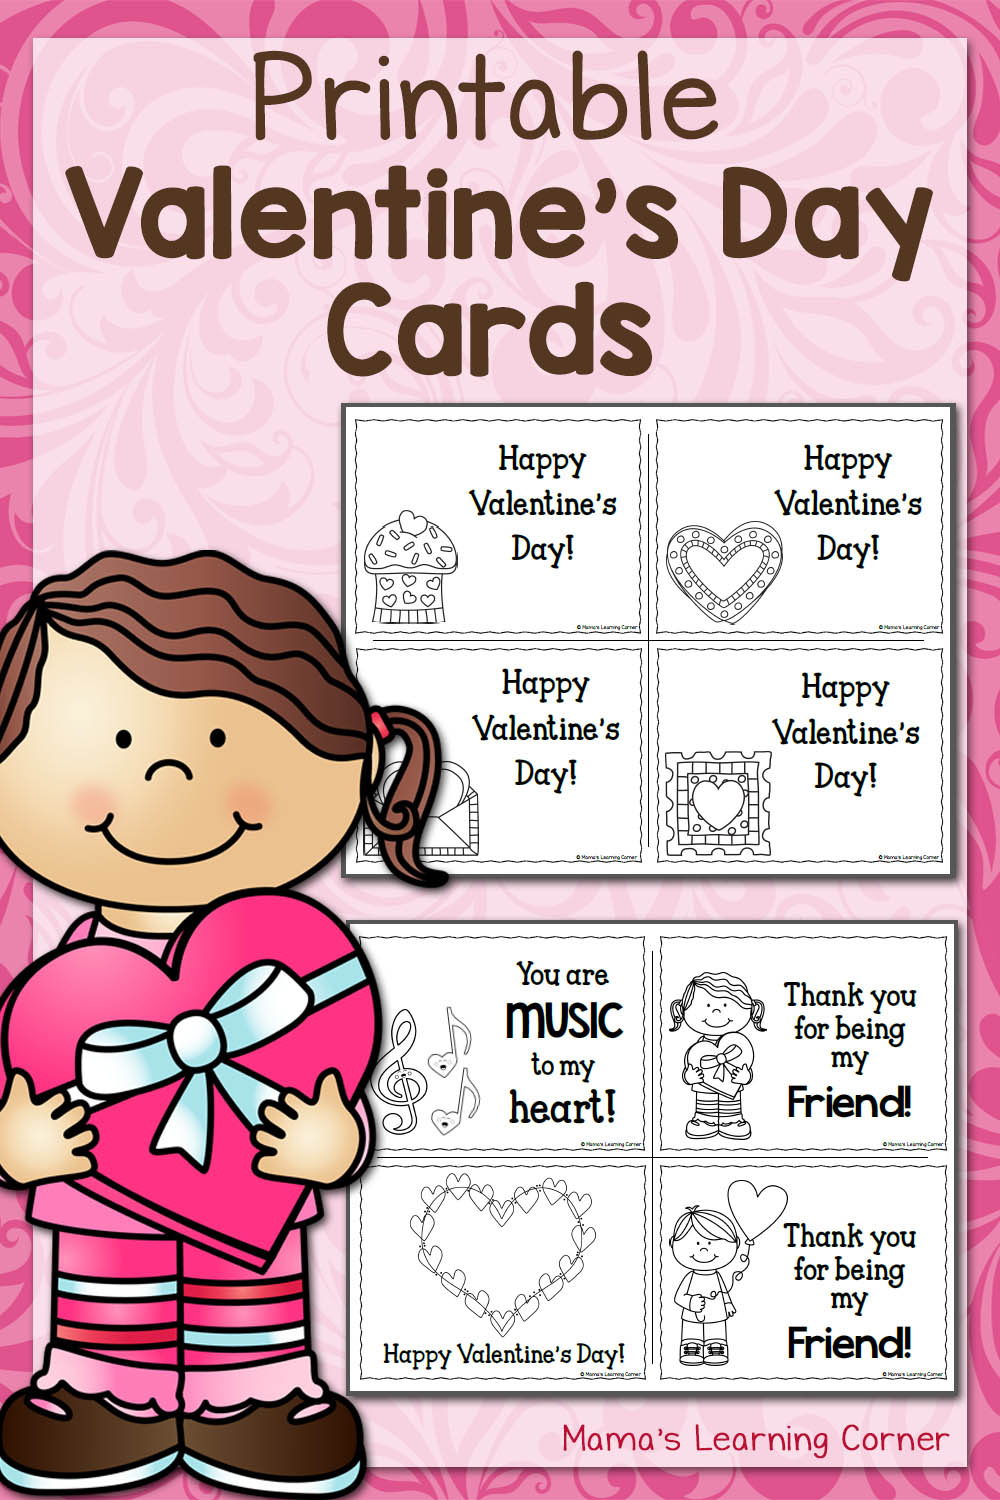 Printable Valentine's Day Cards - Mamas Learning Corner - Free Printable Valentine Cards For Kids